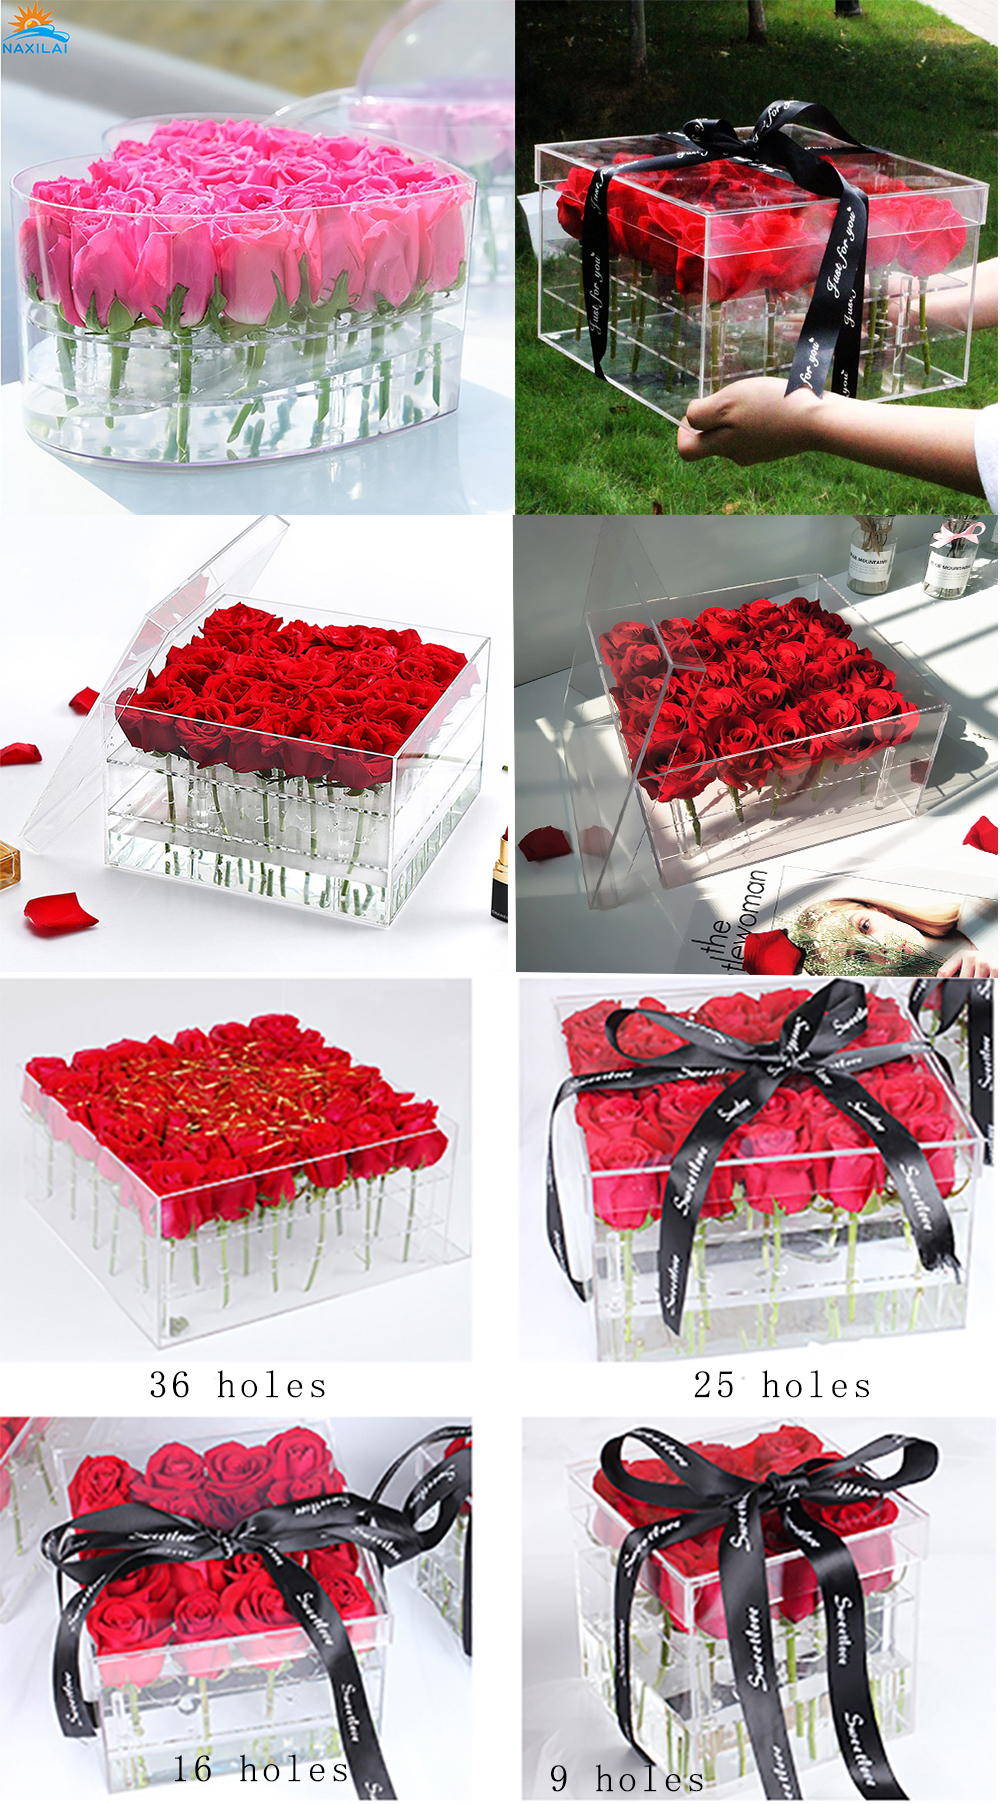 9-36 holes flower box.jpg